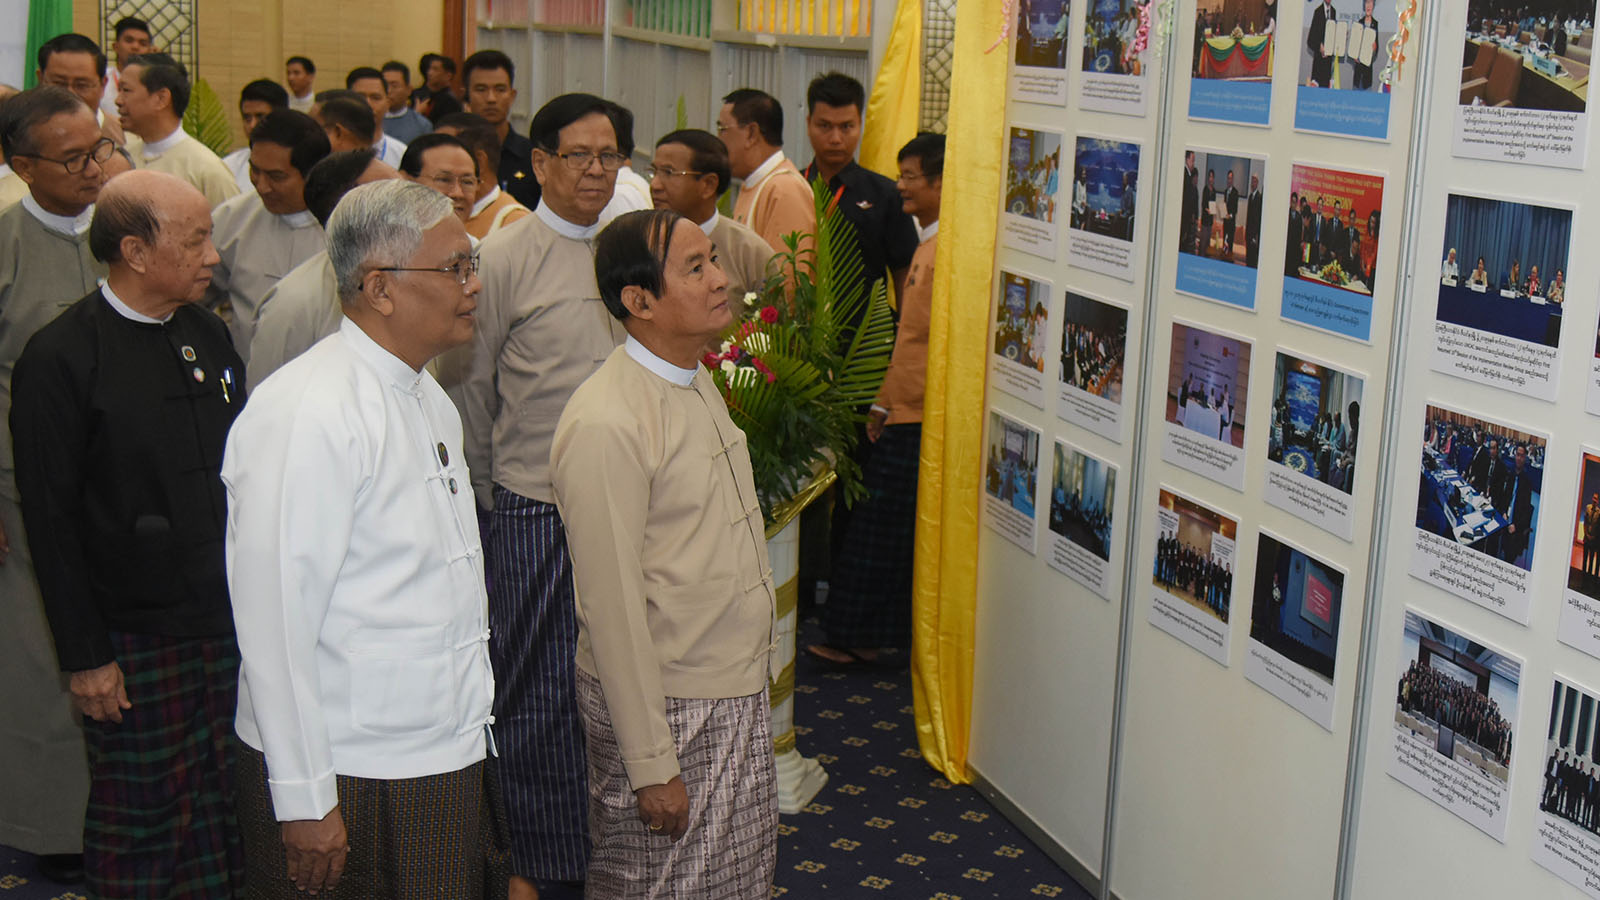 President U Win Myint looks at documentary photos displayed at the event to mark International Anti-Corruption Day in Nay Pyi Taw yesterday.Photo: MNA